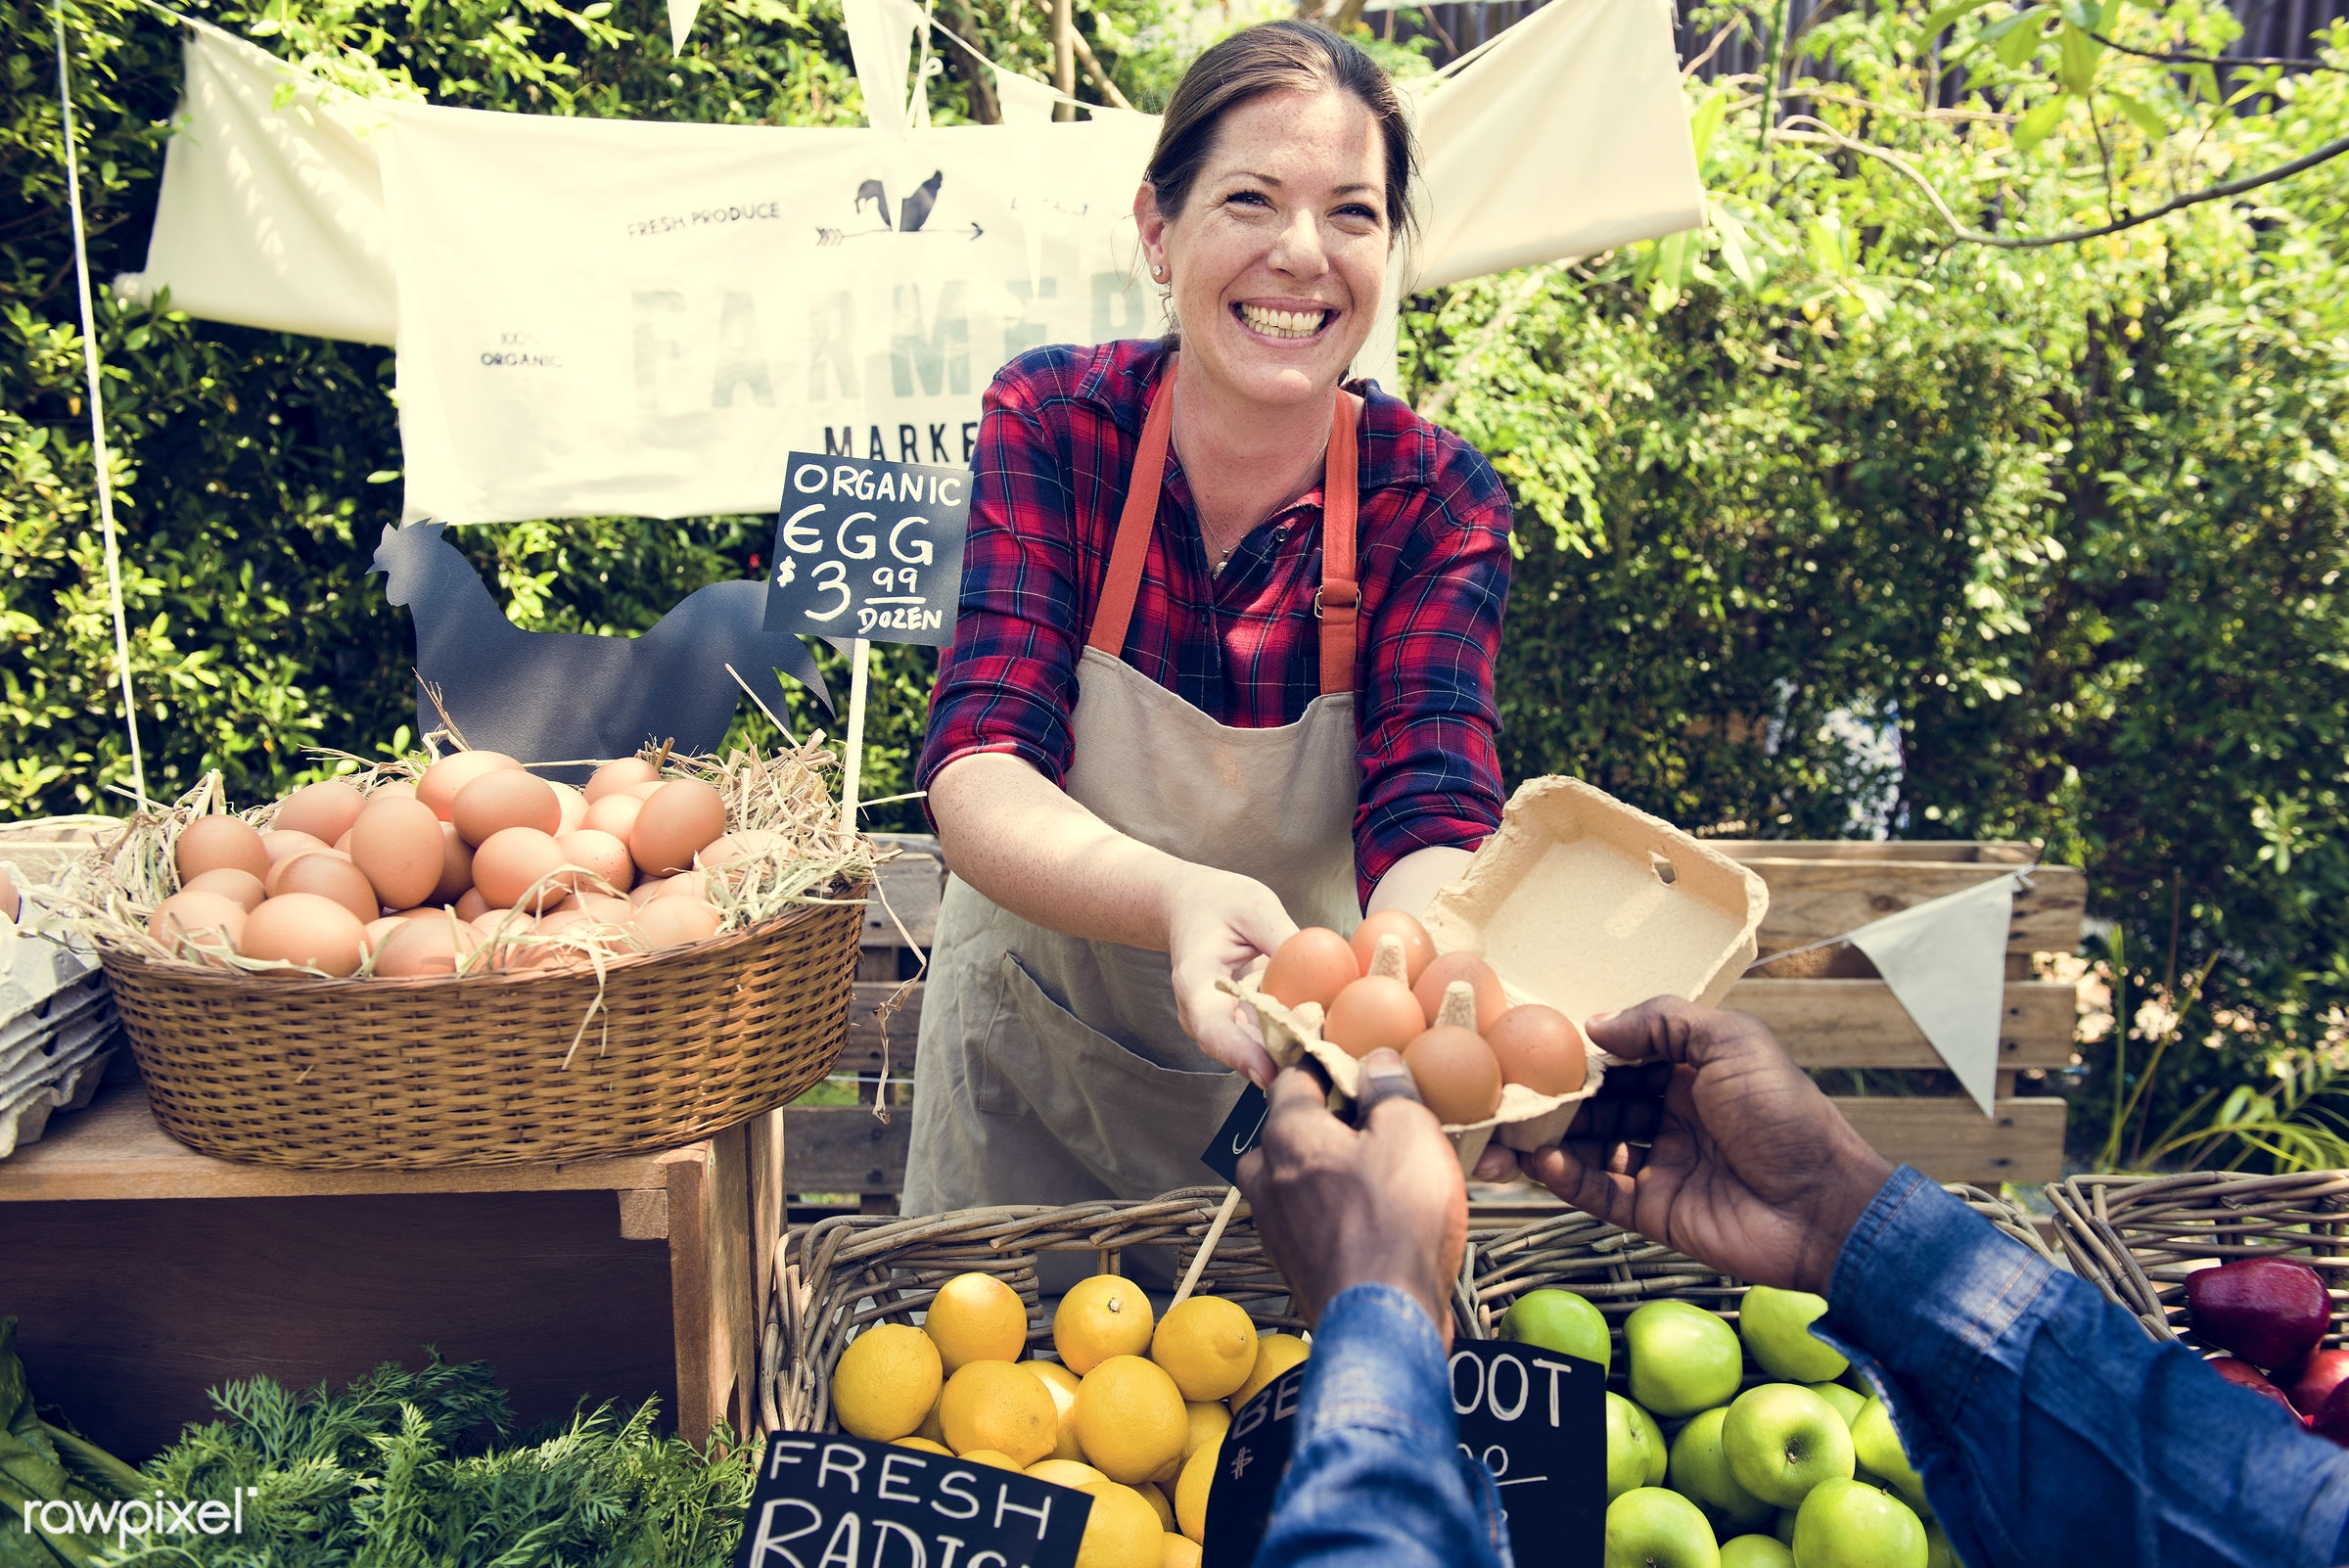 grocery, shop, nutritious, store, customer, egg, farmer, fresh, woman, healthy eating, marketplace, cheerful, man, smiling,...